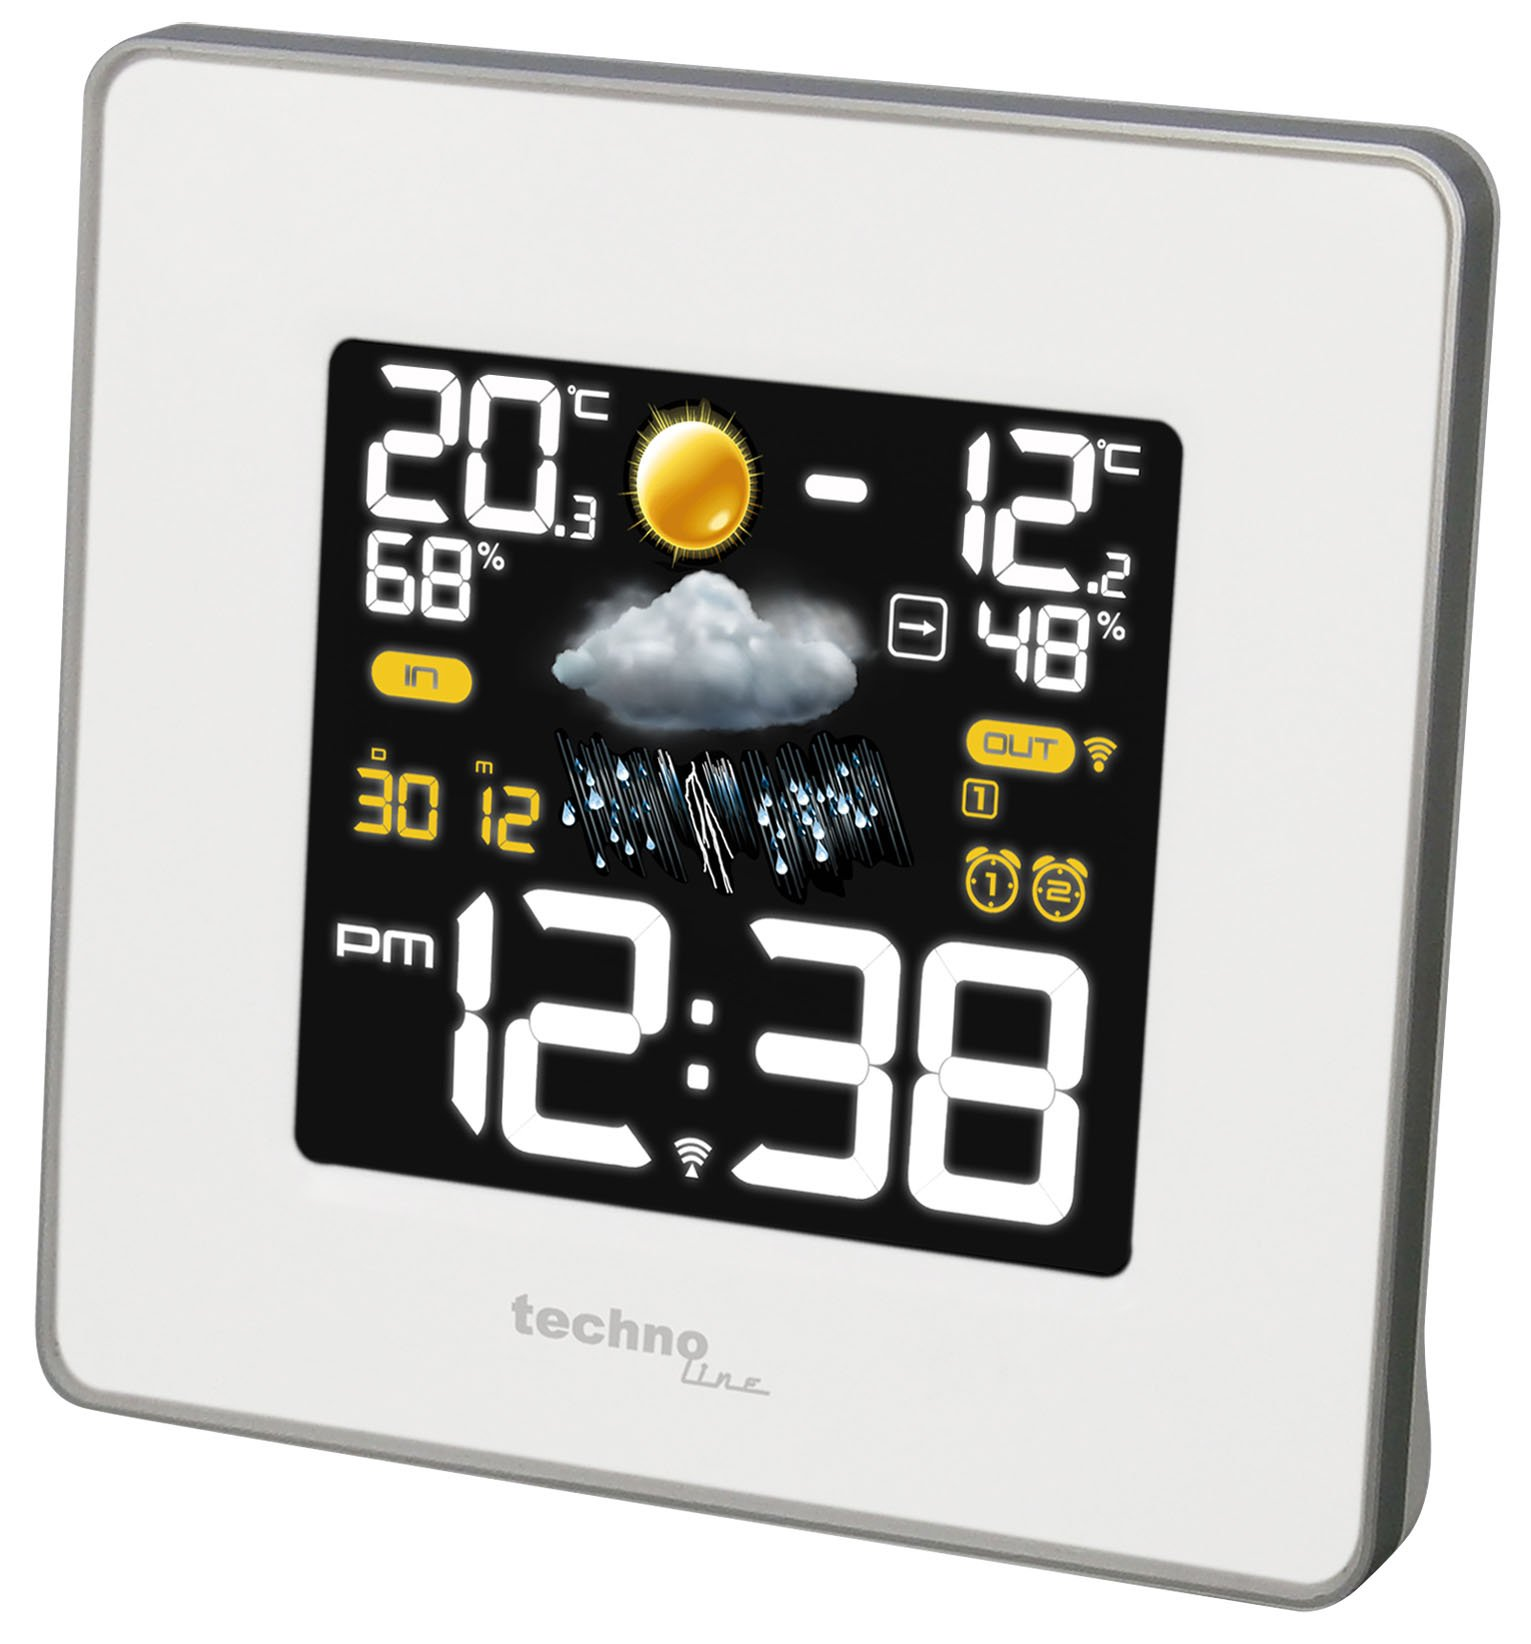 Technoline Ws8117 Wetterstation Funkwetterstation: Technoline Premium LED-Wetterstation WS 6440